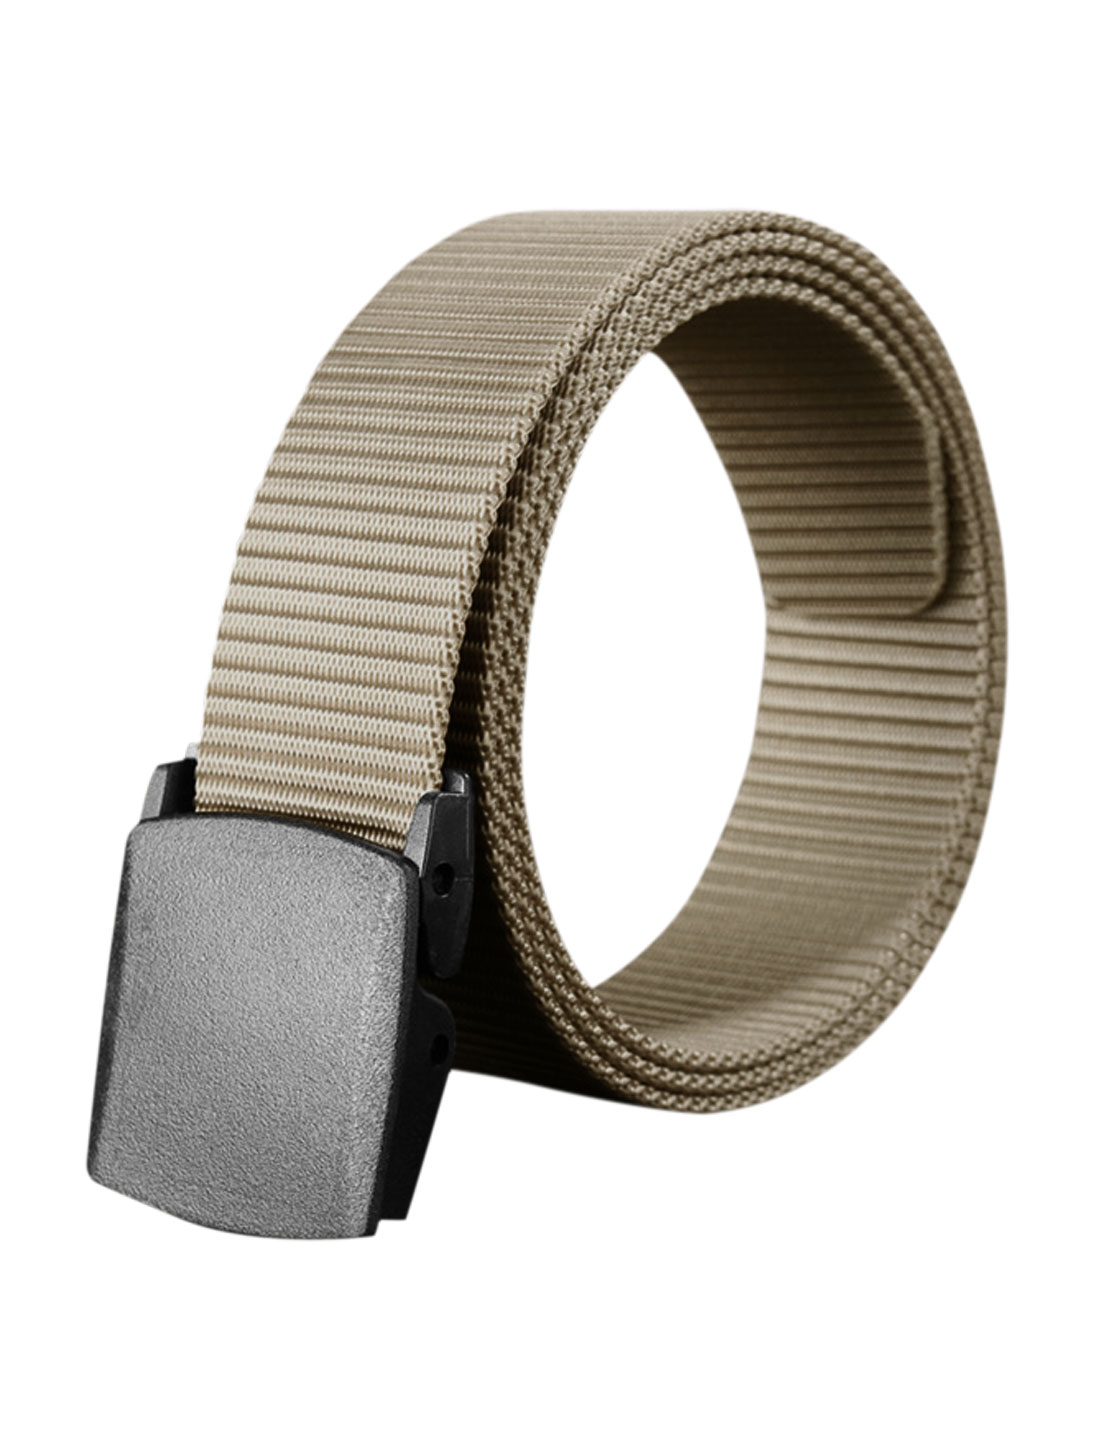 Unisex Plastic Buckle Adjustable Military Canvas Belt Taupe